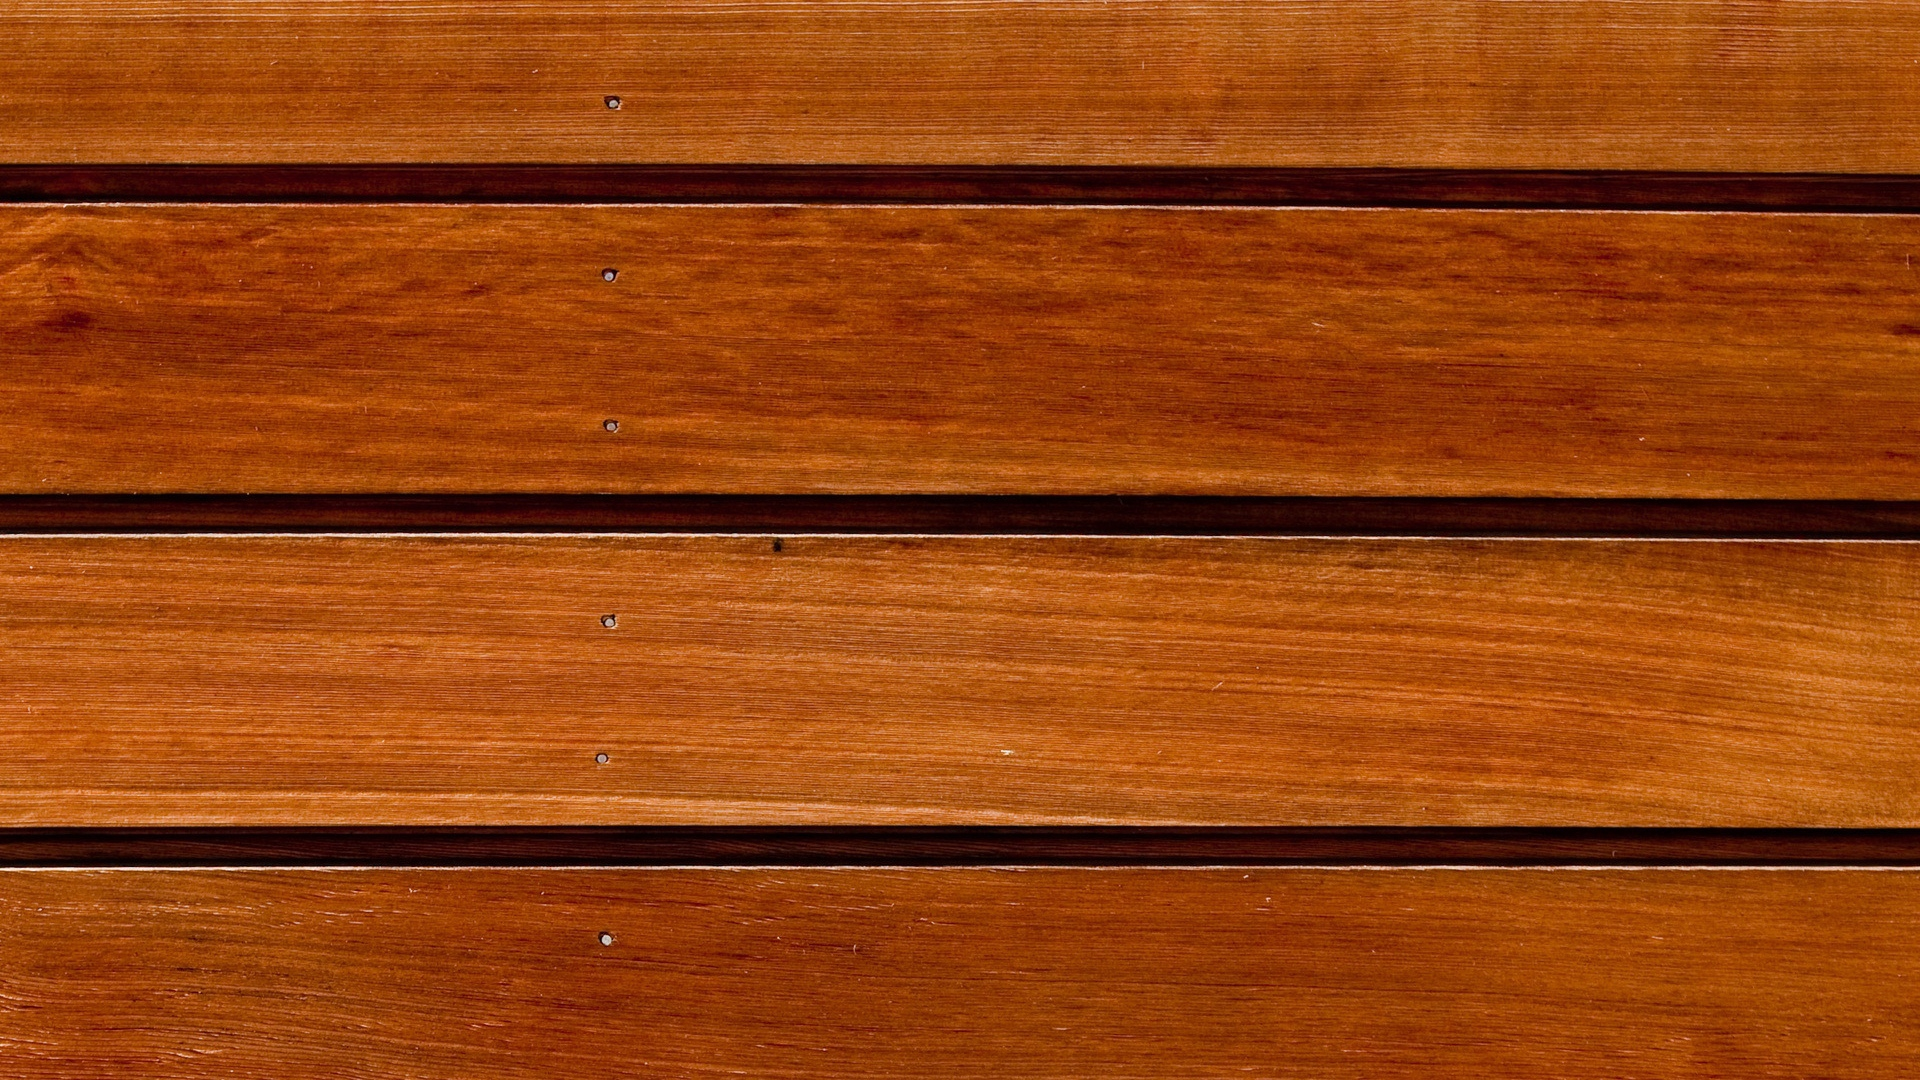 Download Wallpaper 1920x1080 Surface, Wood, Board, Texture